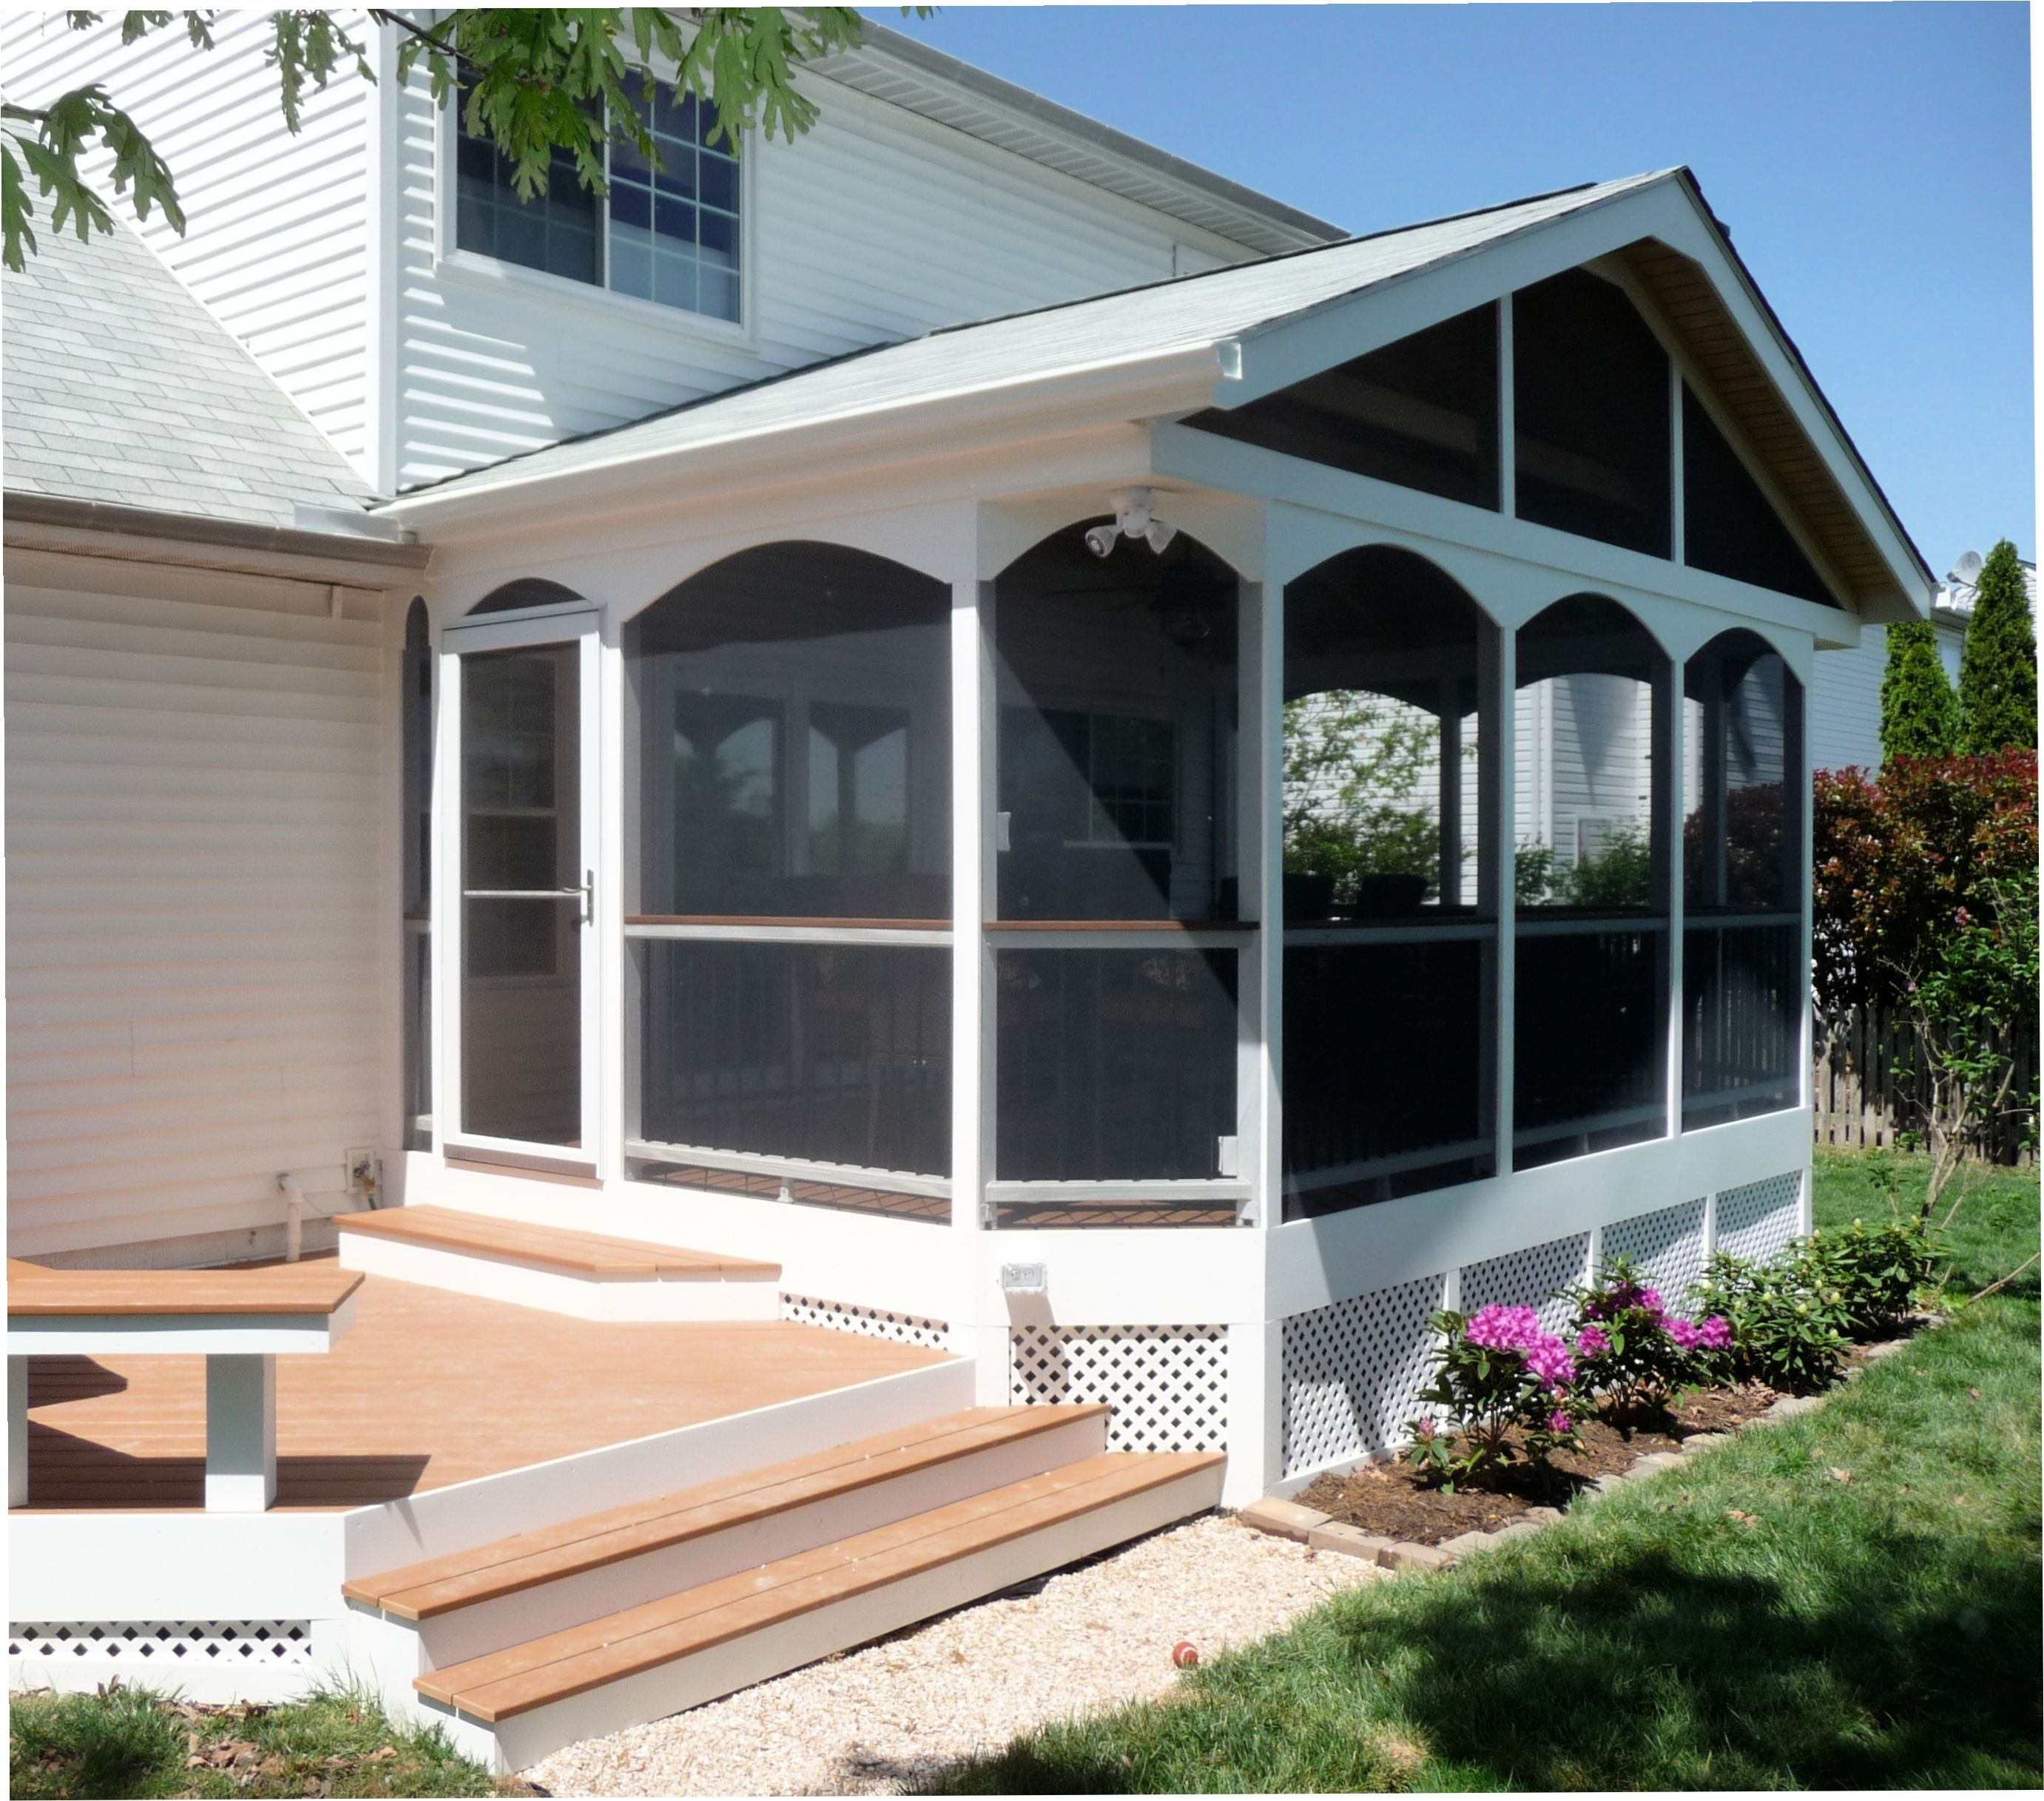 Screen Porch In Azek Fawn And Trex Transcends Railing In